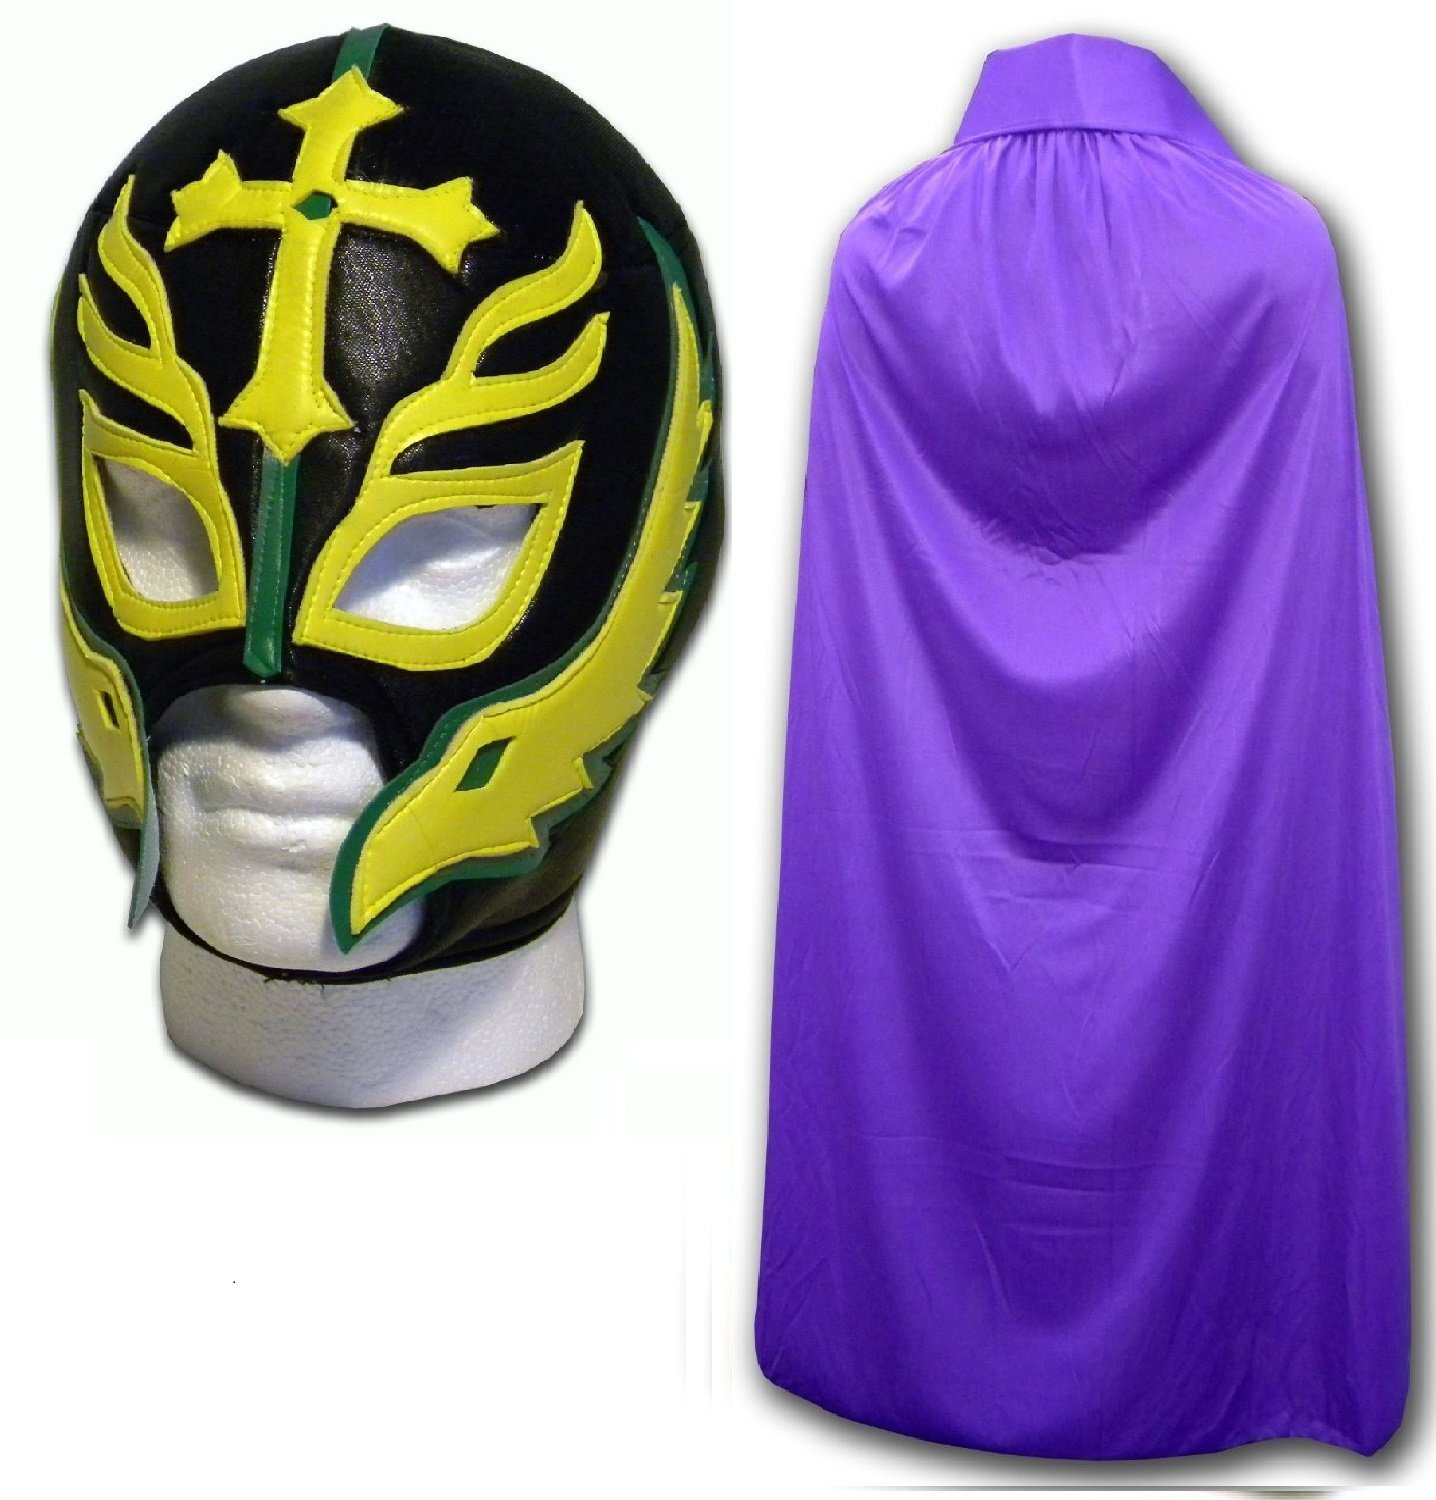 WRESTLING MASKS UK Men's Son Of The Devil Caribe Luchador Mask With Cape One Size Purple by Wrestling